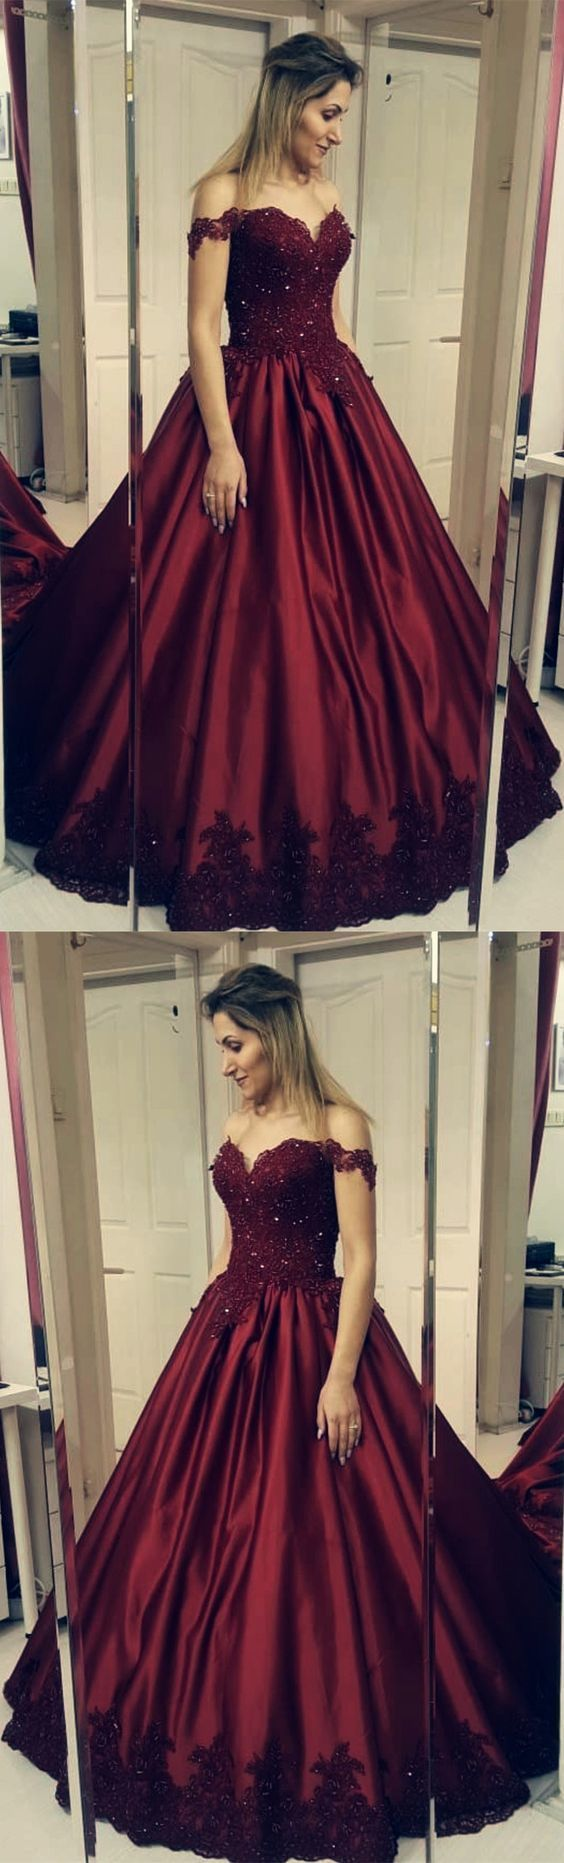 Burgundy Lace Appliques Ball Gowns Satin Wedding Dress Off Shoulder